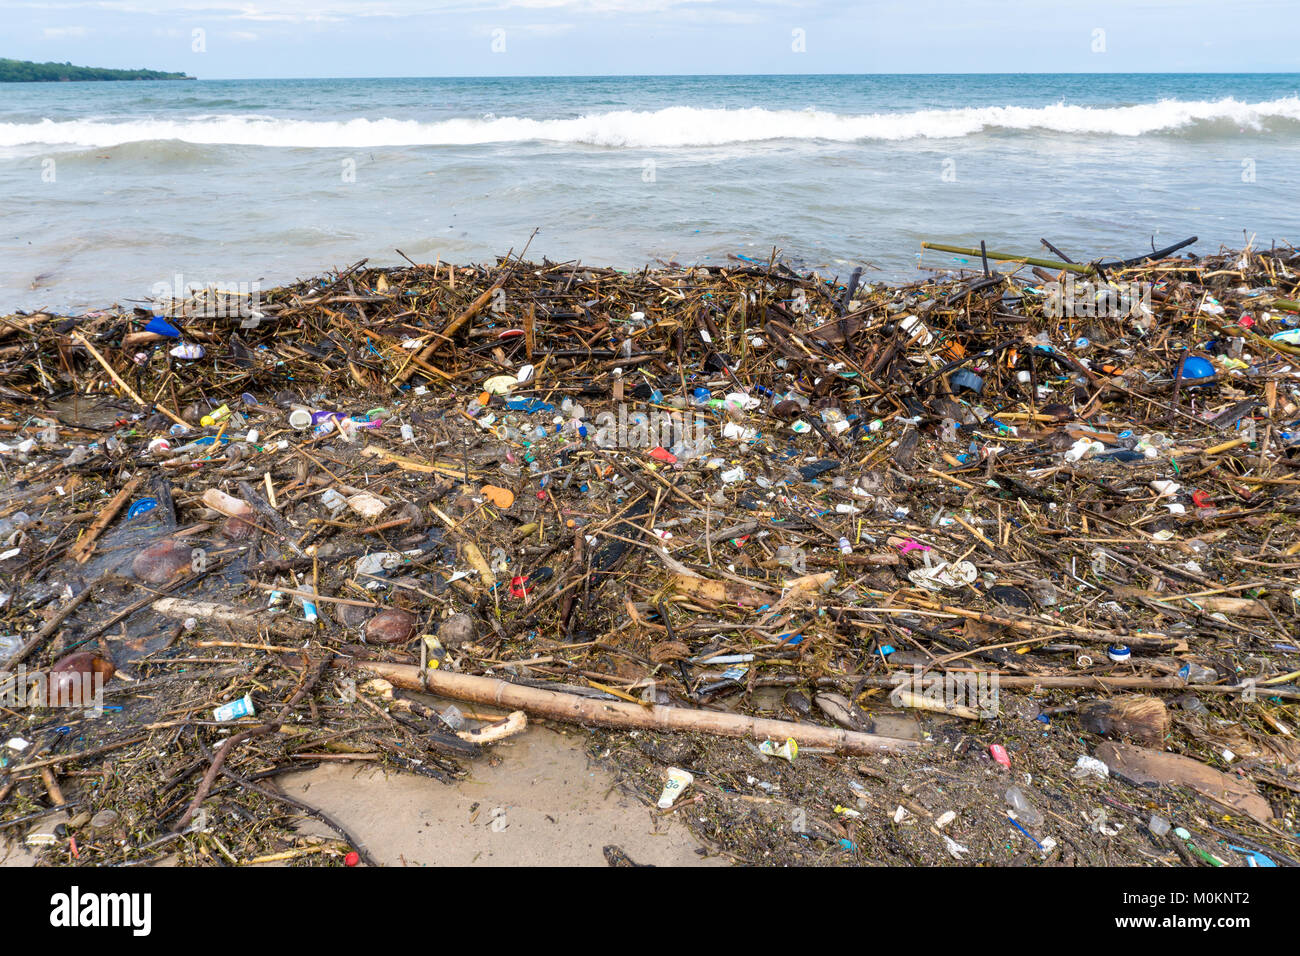 Beach Garbage. Rubbish washed up on shore line - Stock Image